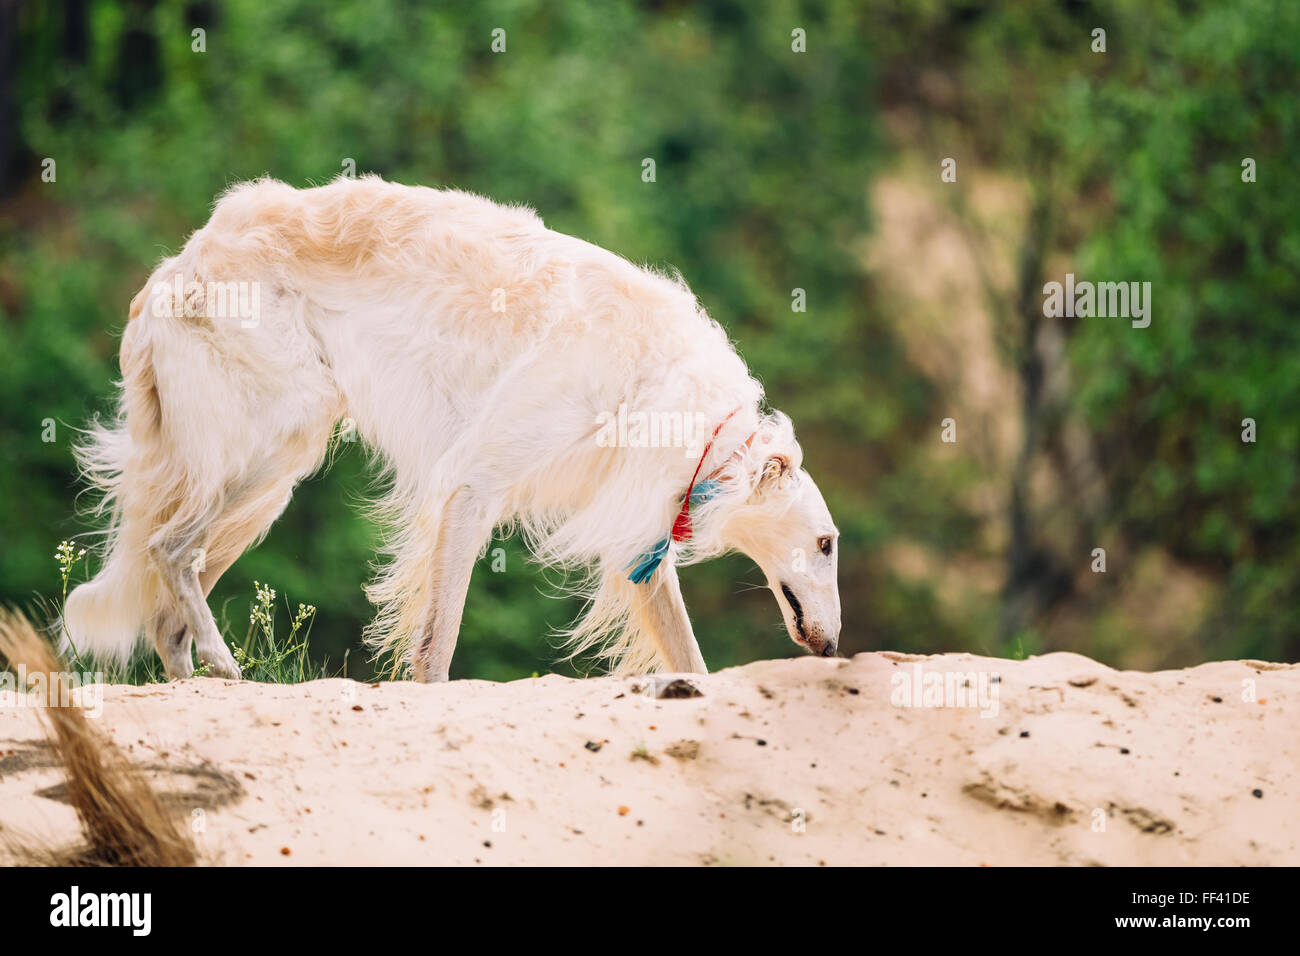 White Russian Wolfhound Dog, Borzoi, Hunting dog, Sighthound in Spring Summer Forest. These dogs specialize in pursuing Stock Photo